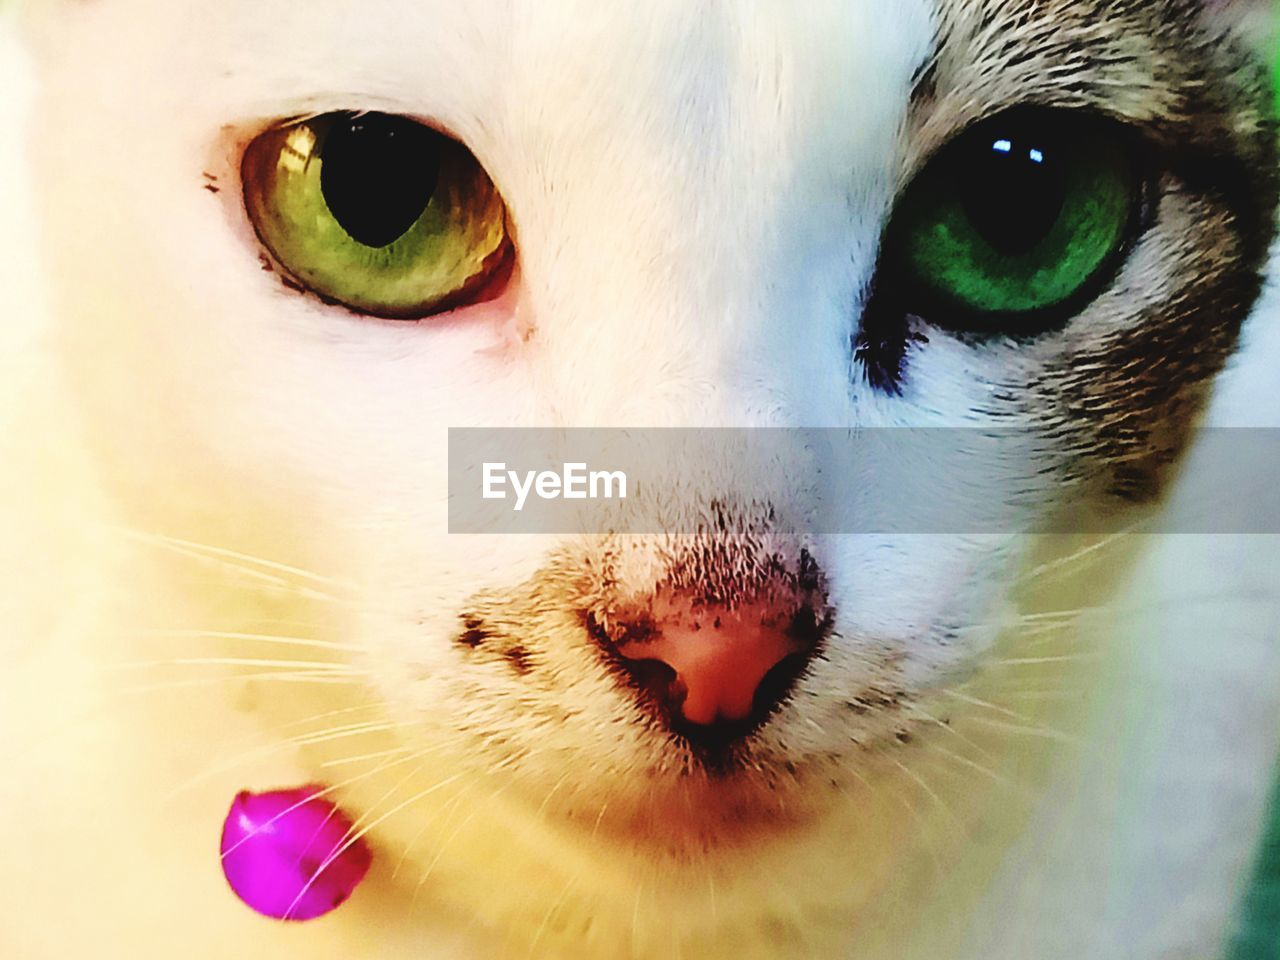 pets, domestic, domestic animals, mammal, cat, one animal, domestic cat, animal themes, feline, animal, close-up, vertebrate, animal body part, no people, whisker, eye, indoors, looking at camera, portrait, animal eye, animal head, animal nose, animal mouth, snout